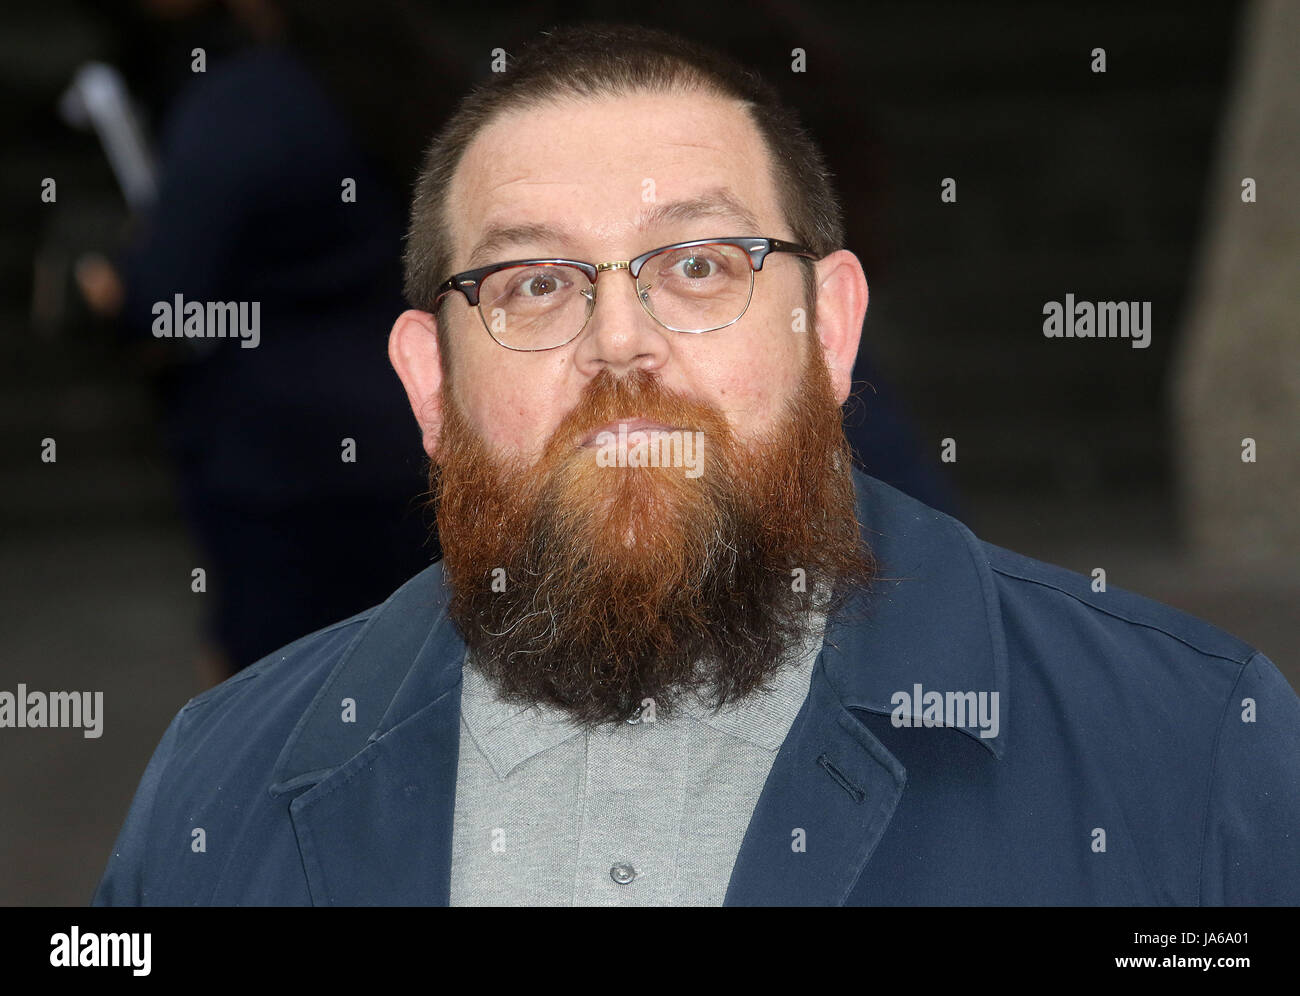 May 08, 2017 - Nick Frost attending 'Jawbone' UK Premiere at BFI Southbank in London, England, UK - Stock Image